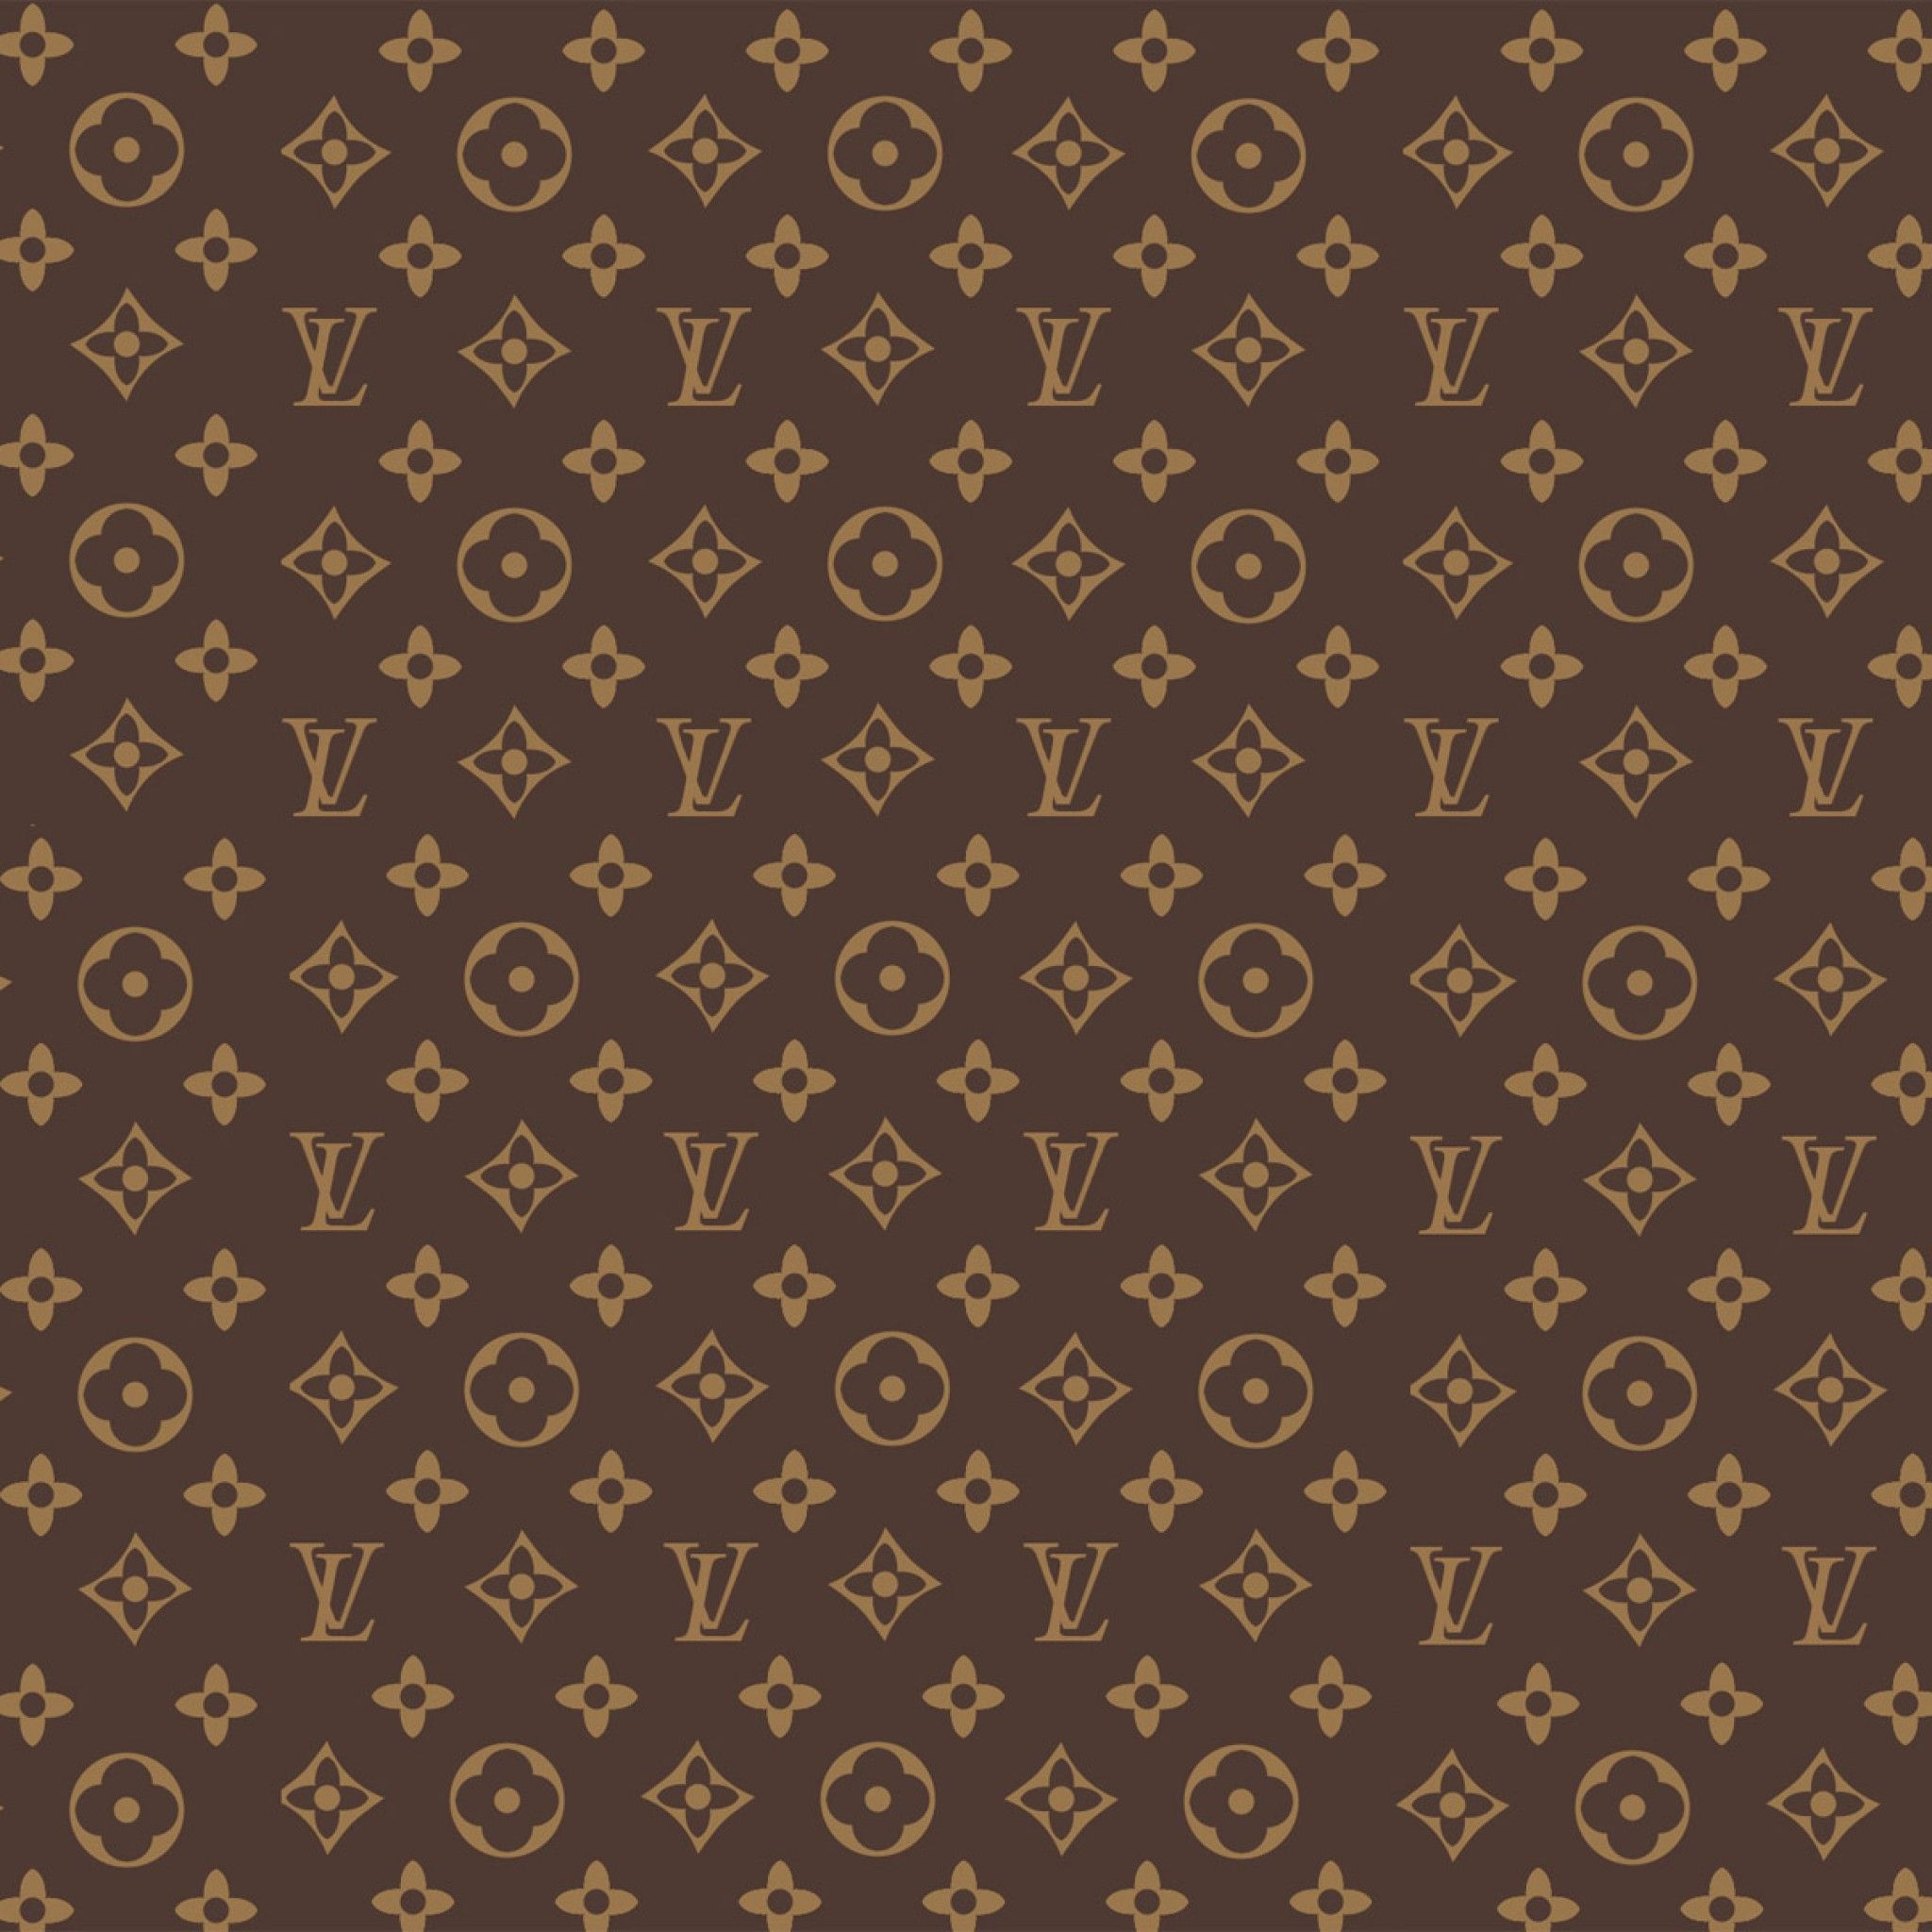 Lv Wallpapers Top Free Lv Backgrounds Wallpaperaccess